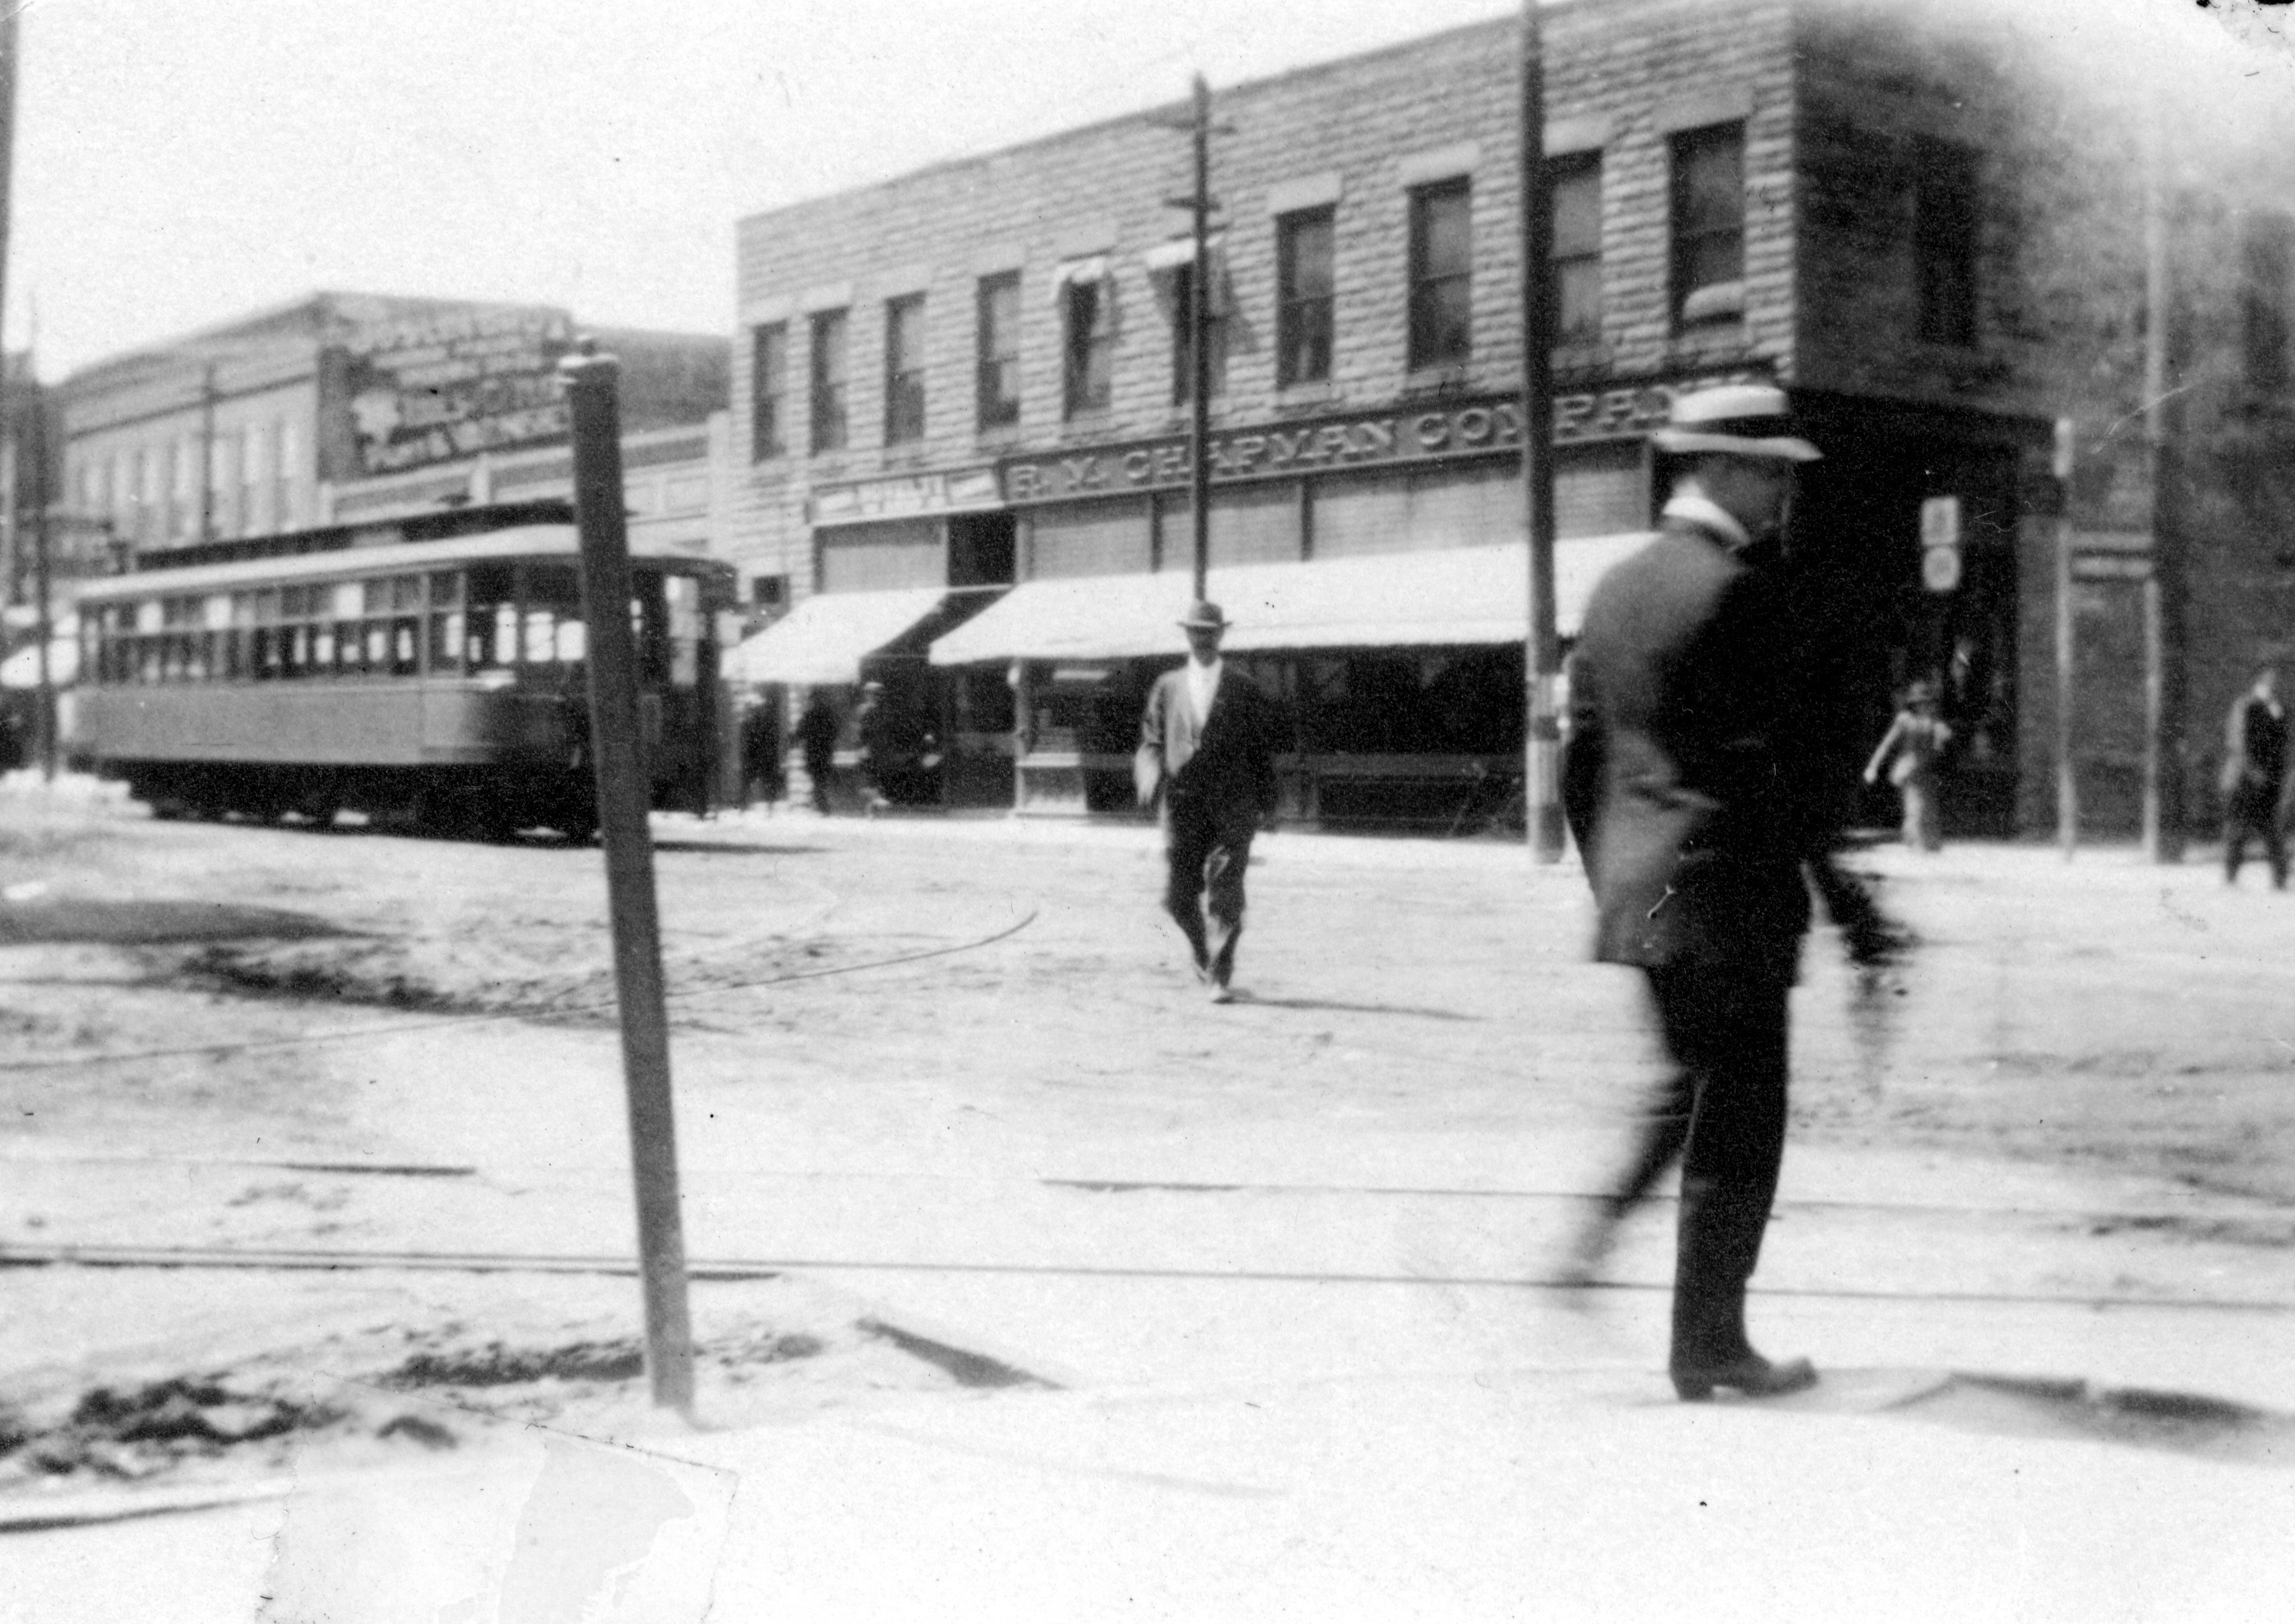 A streetcar traveling down Water Street in Excelsior in 1907.